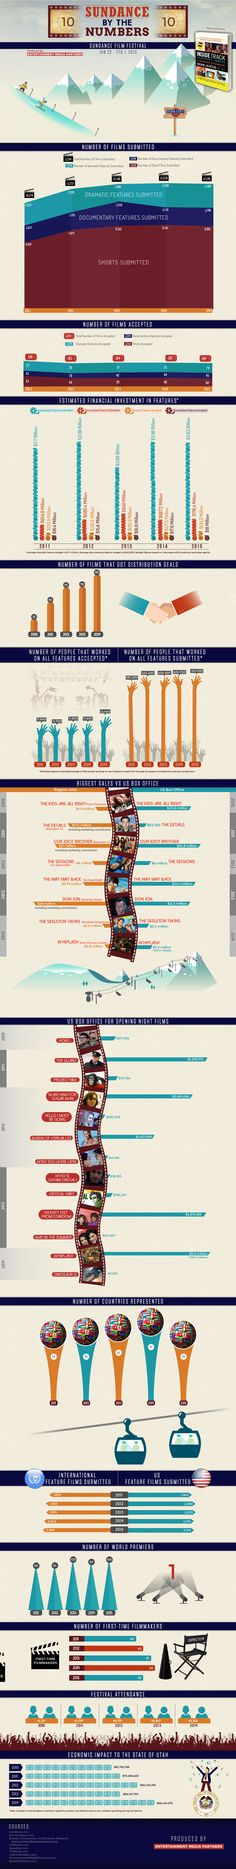 Sundance By the Numbers #infographic